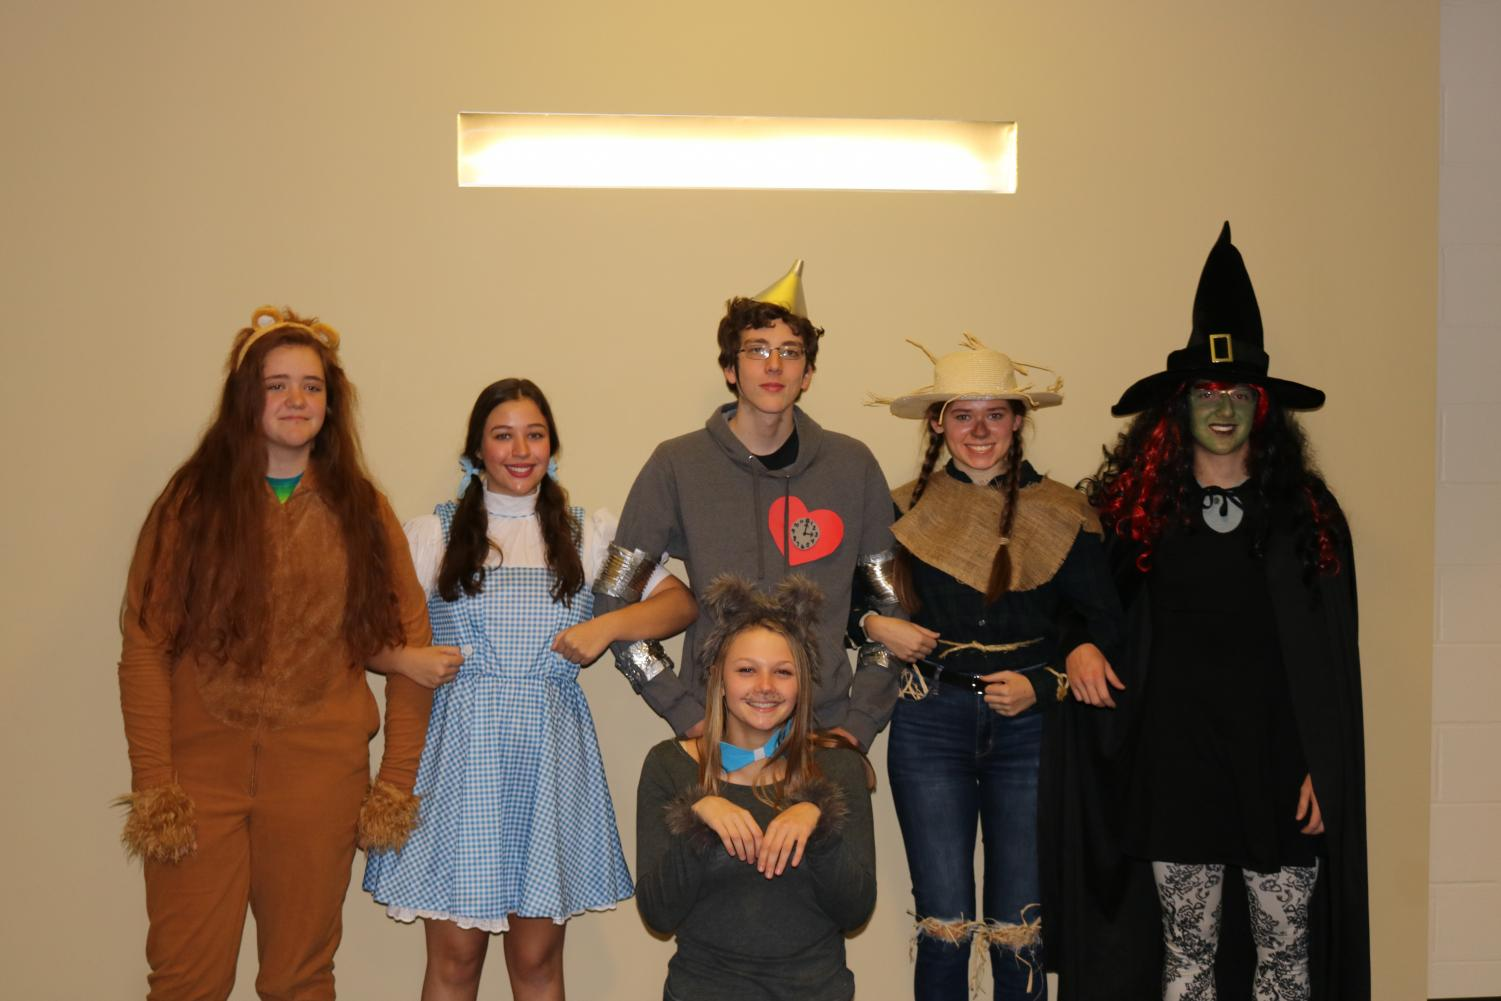 The group of the Wizard of Oz. From left to right: Jade Kallenbach as the Lion, Sadie Scott as Dorothy, Samuel VonBehren as the Tin Man, Allison Butler as the Scarecrow, Dylan Baker as the Wicked Witch. Front row: Kaelee Stockton as Toto.